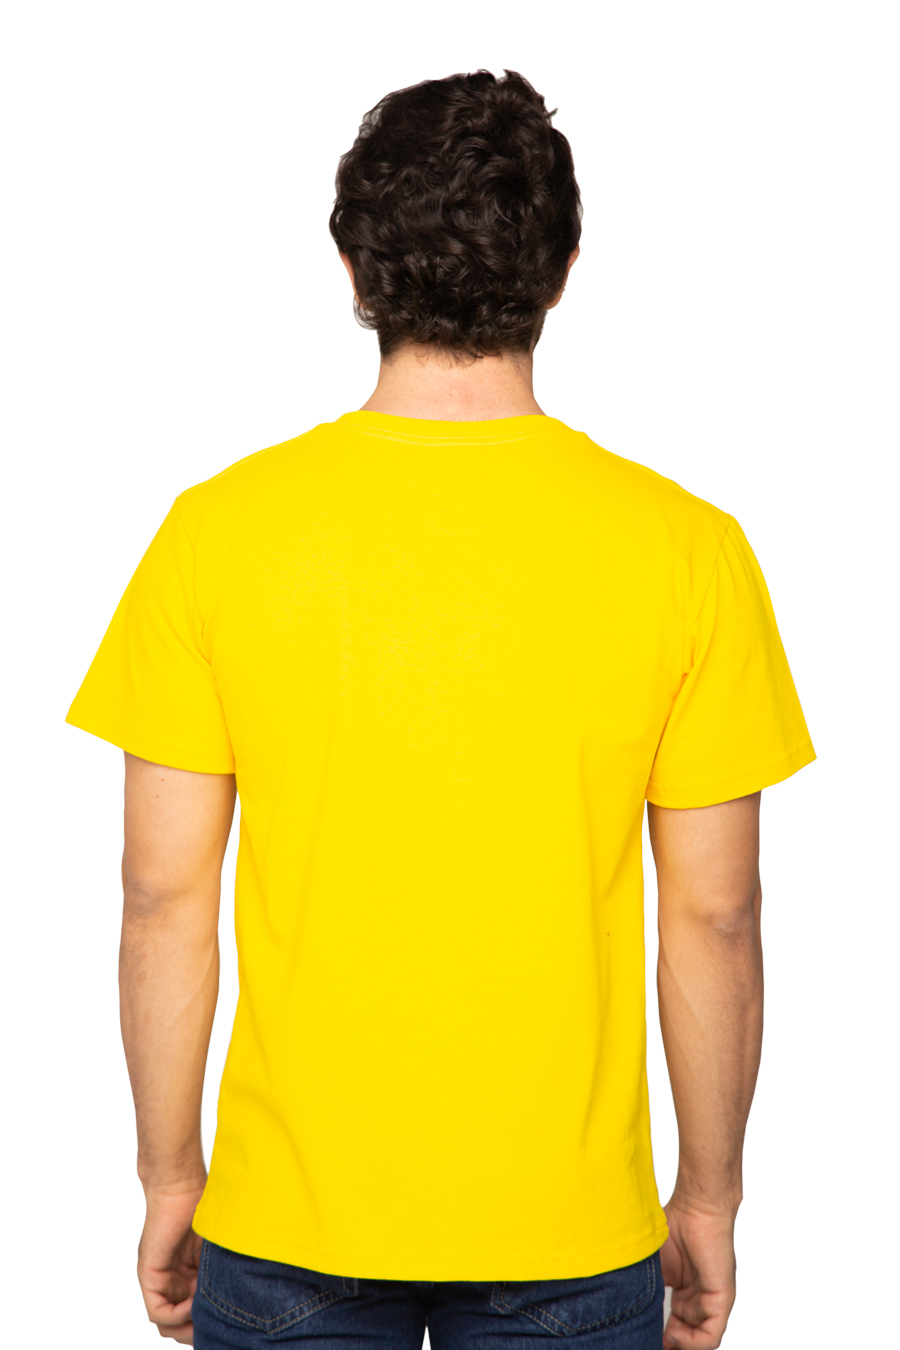 Camiseta Mod. 1 Color Amarillo Mop